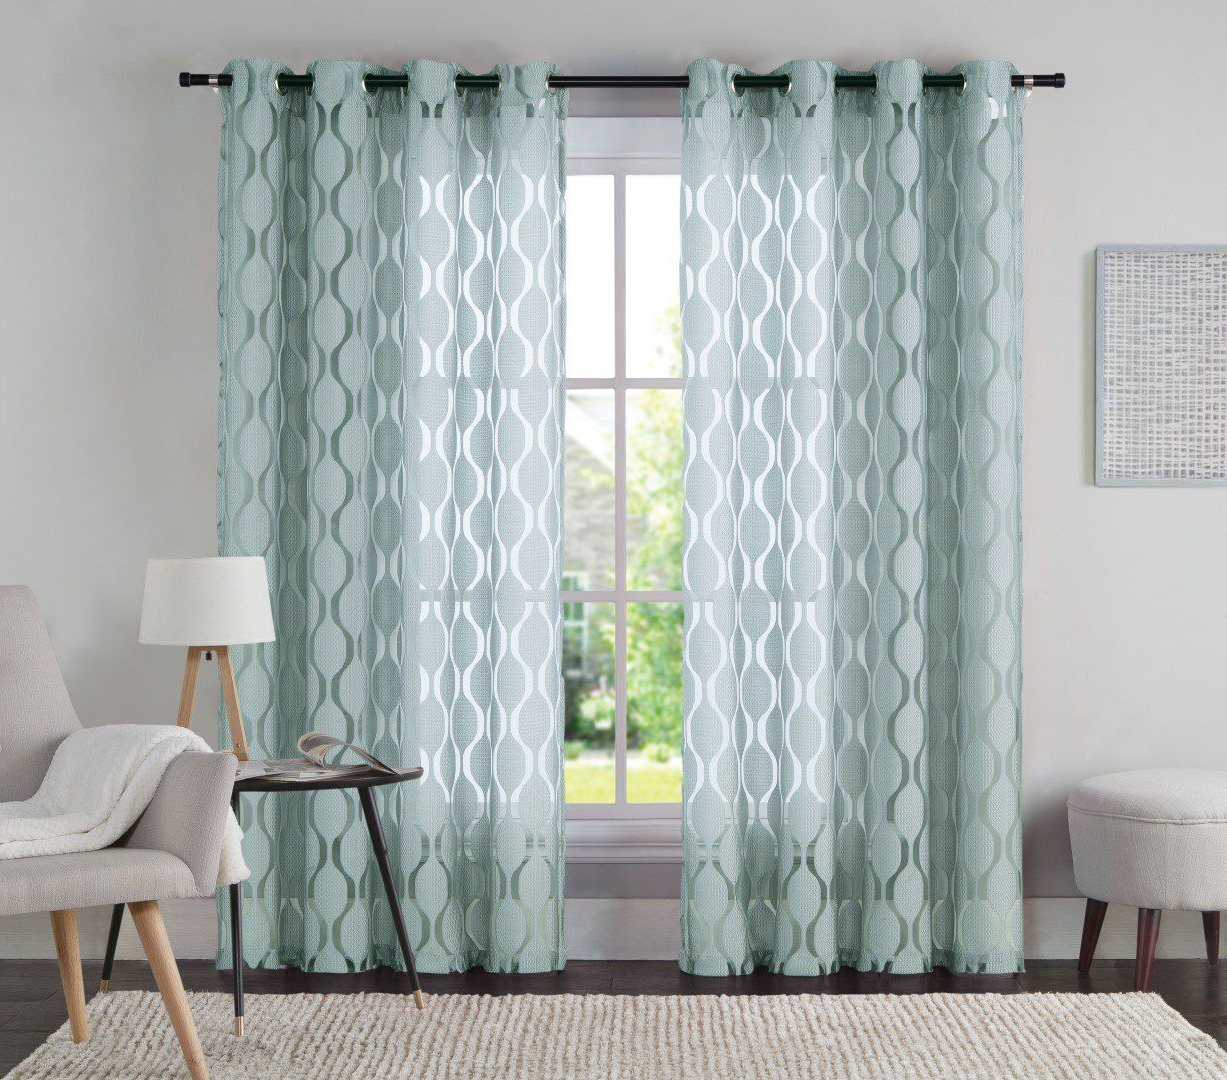 Amazon: One (1) Jacquard Grommet Window Curtain Panel In Well Liked Overseas Leaf Swirl Embroidered Curtain Panel Pairs (View 2 of 21)